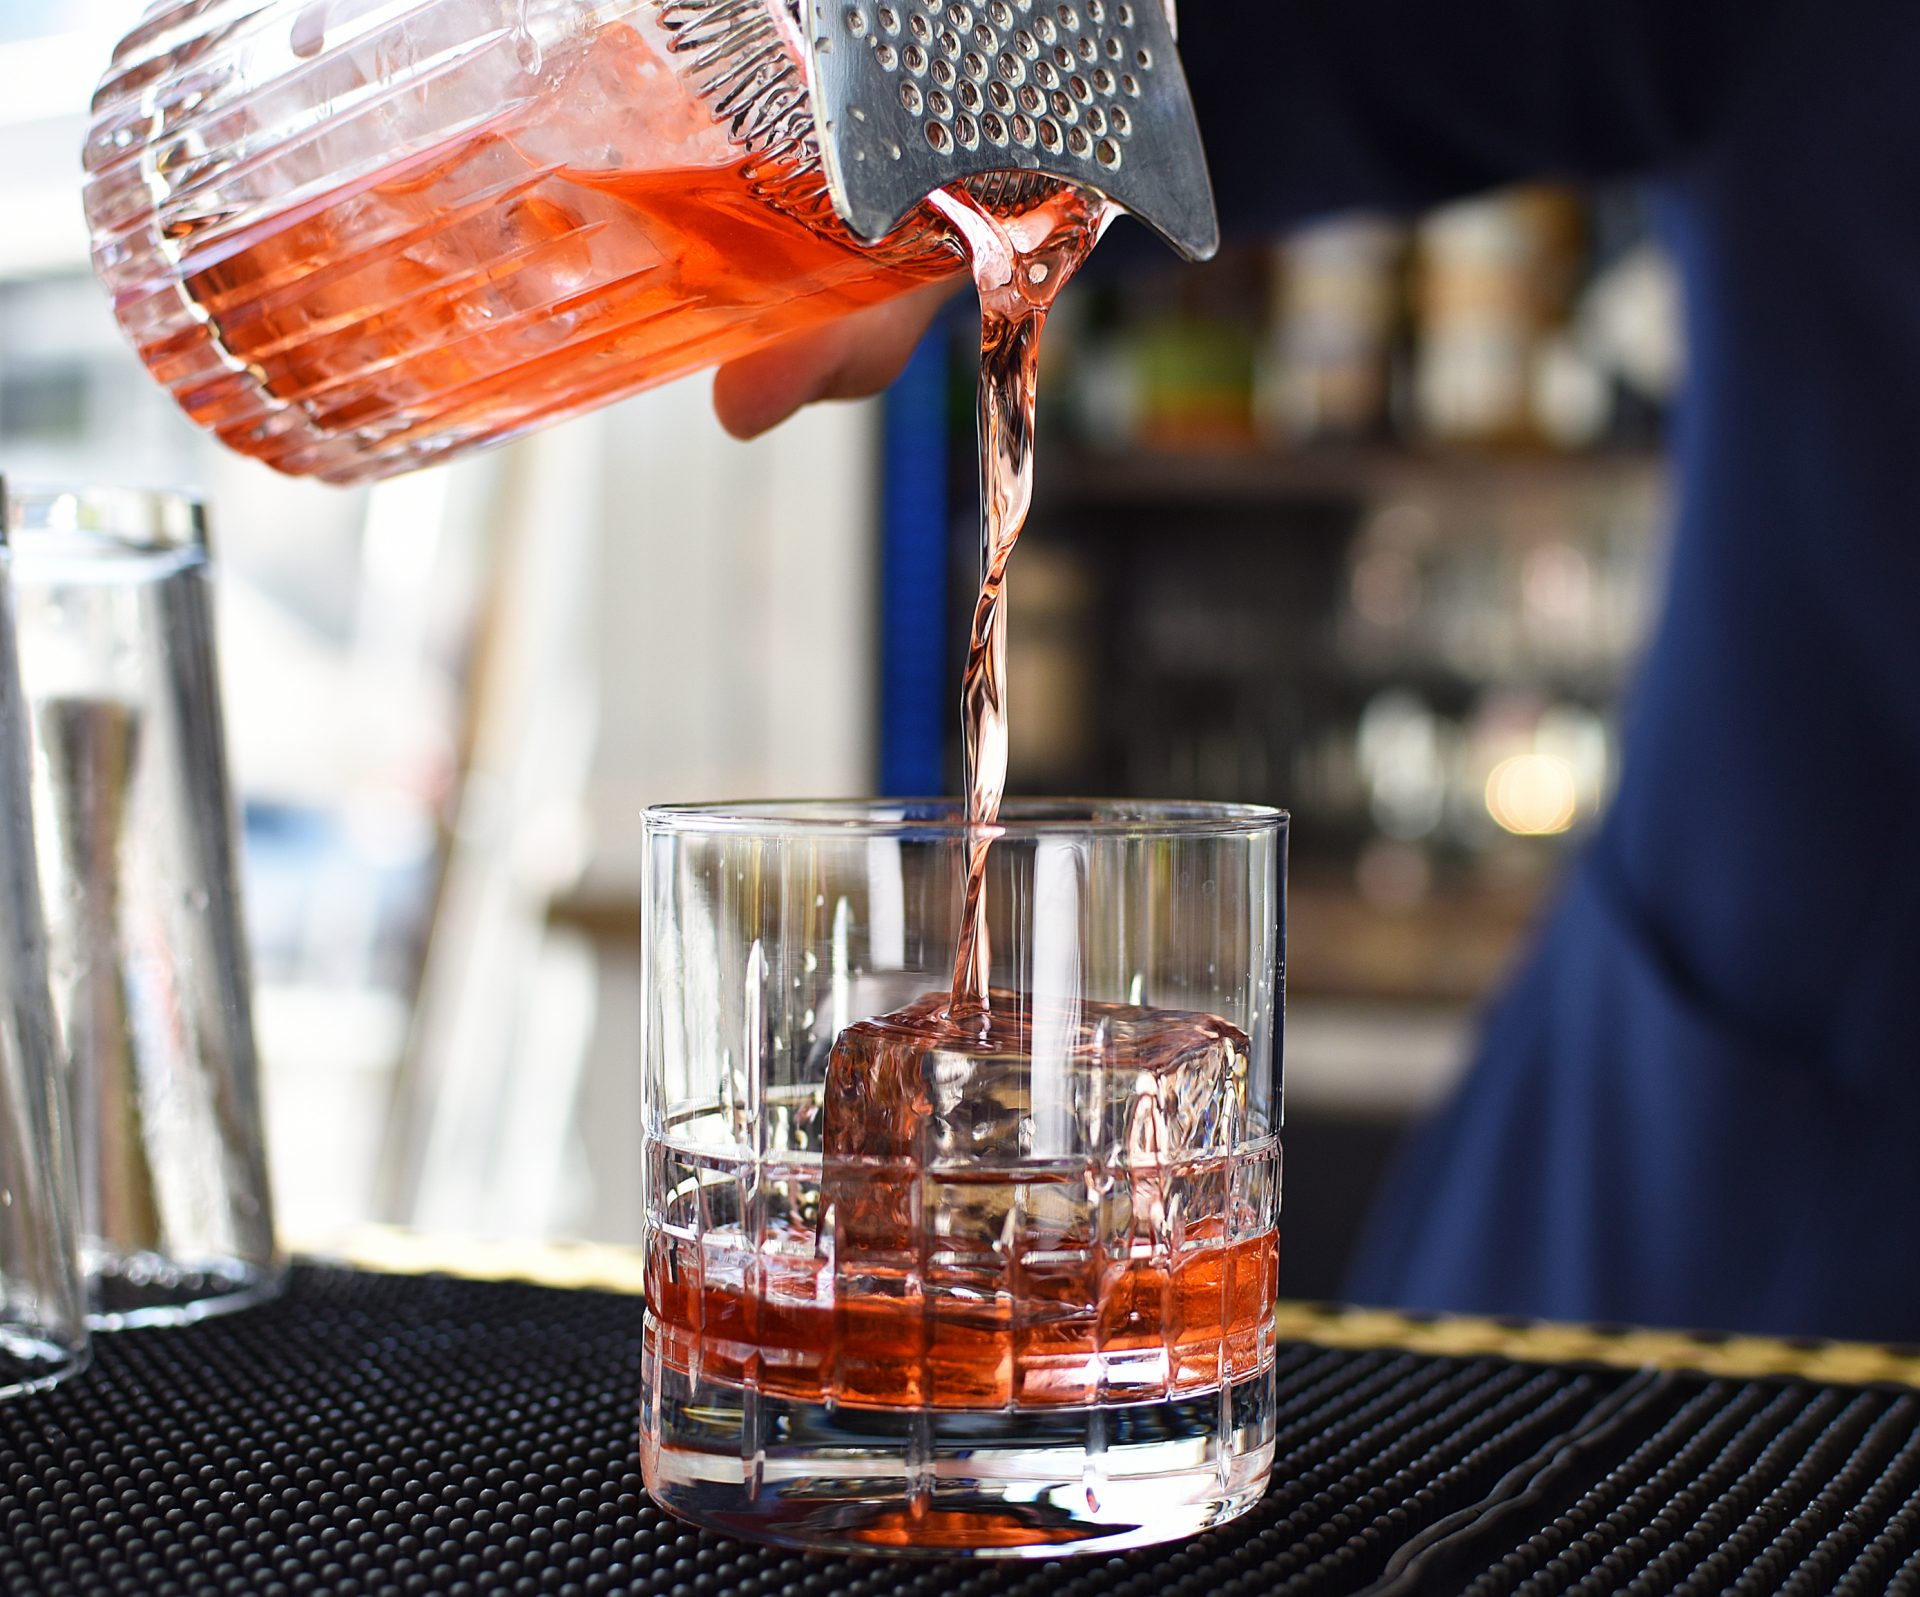 Close up of bartender pouring freshly mixed cocktail into short glass with large ice cube